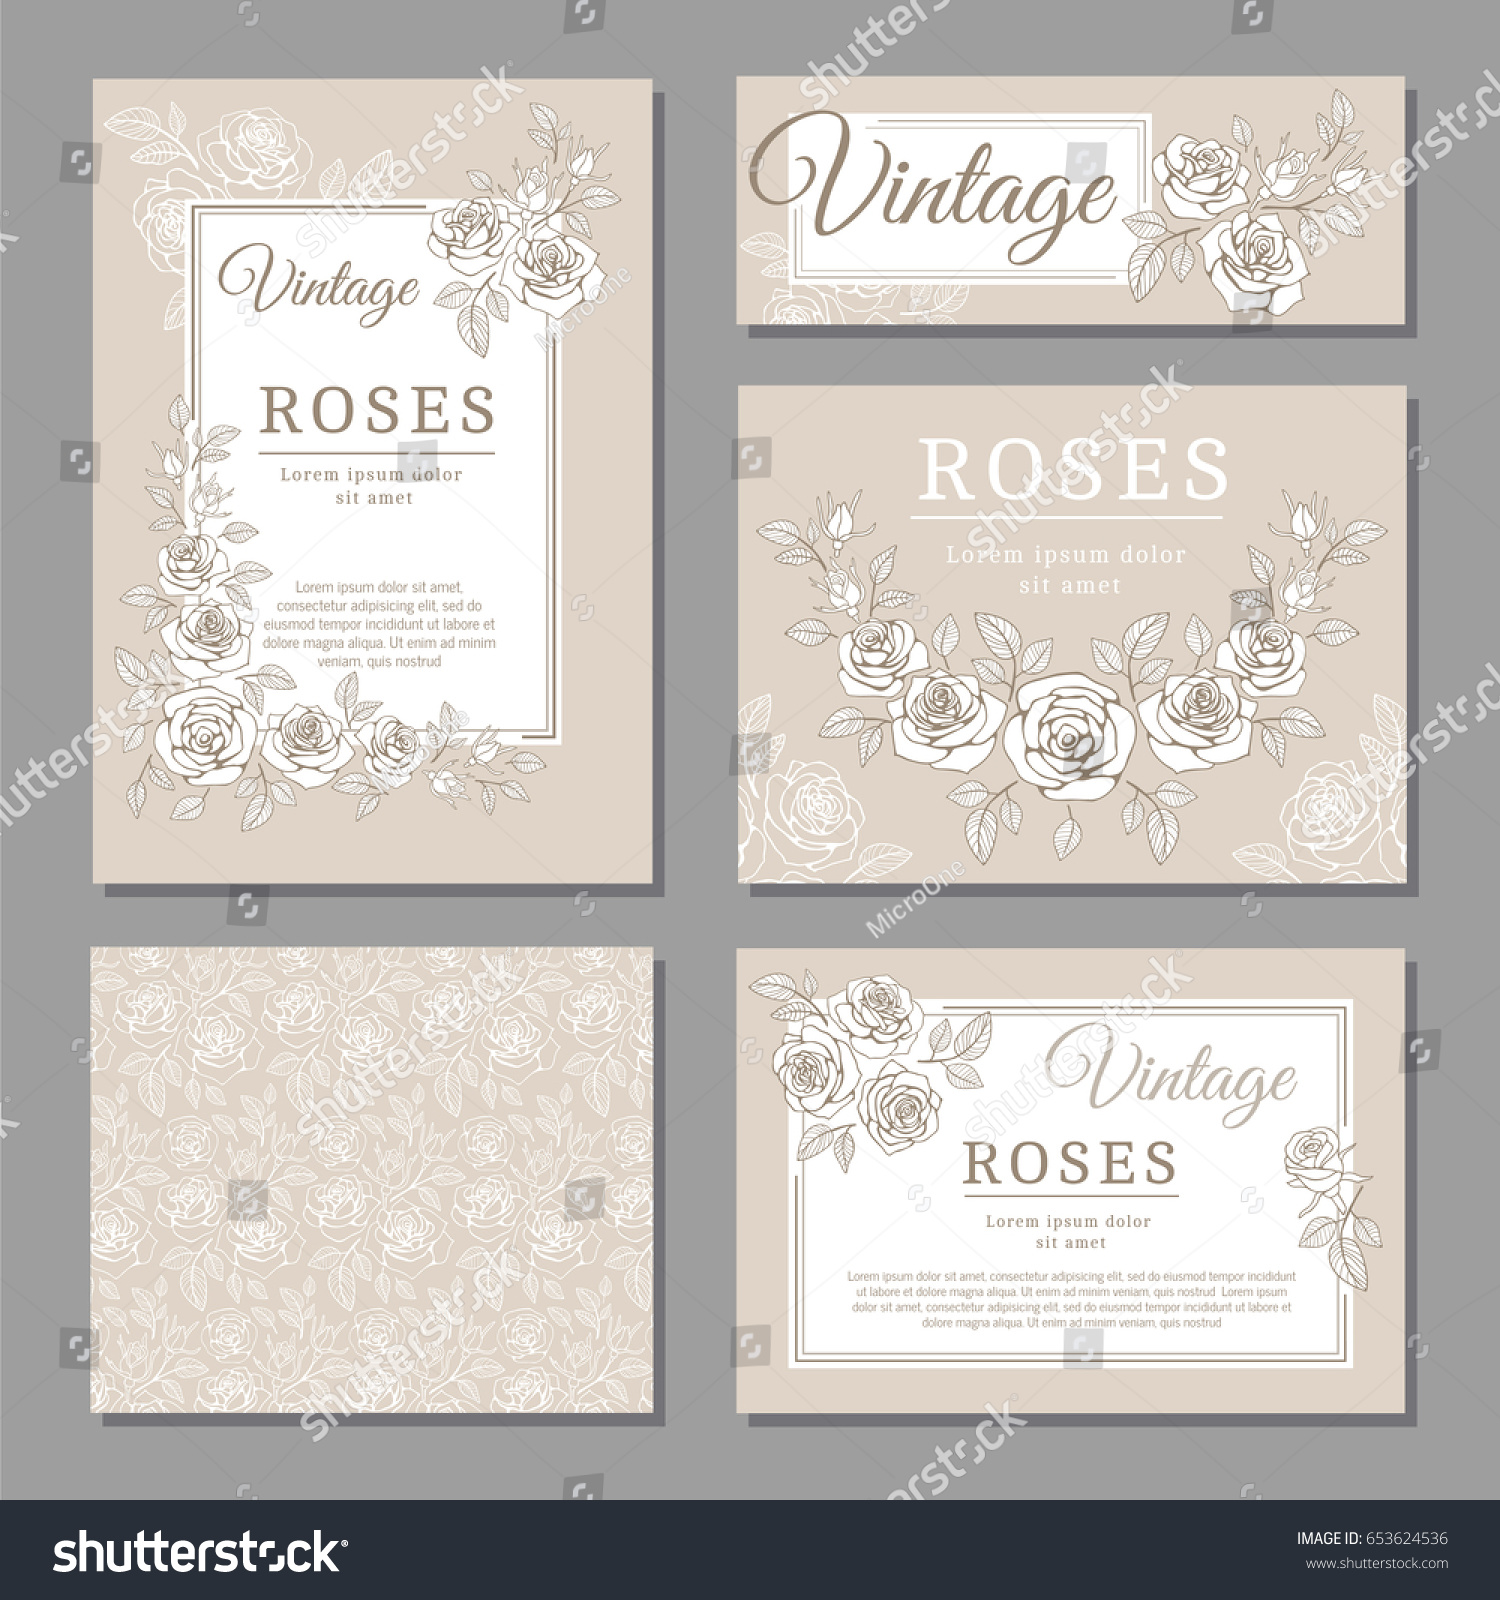 Classic Wedding Vintage Invitation Cards Roses Vector – Vintage Invitation Cards